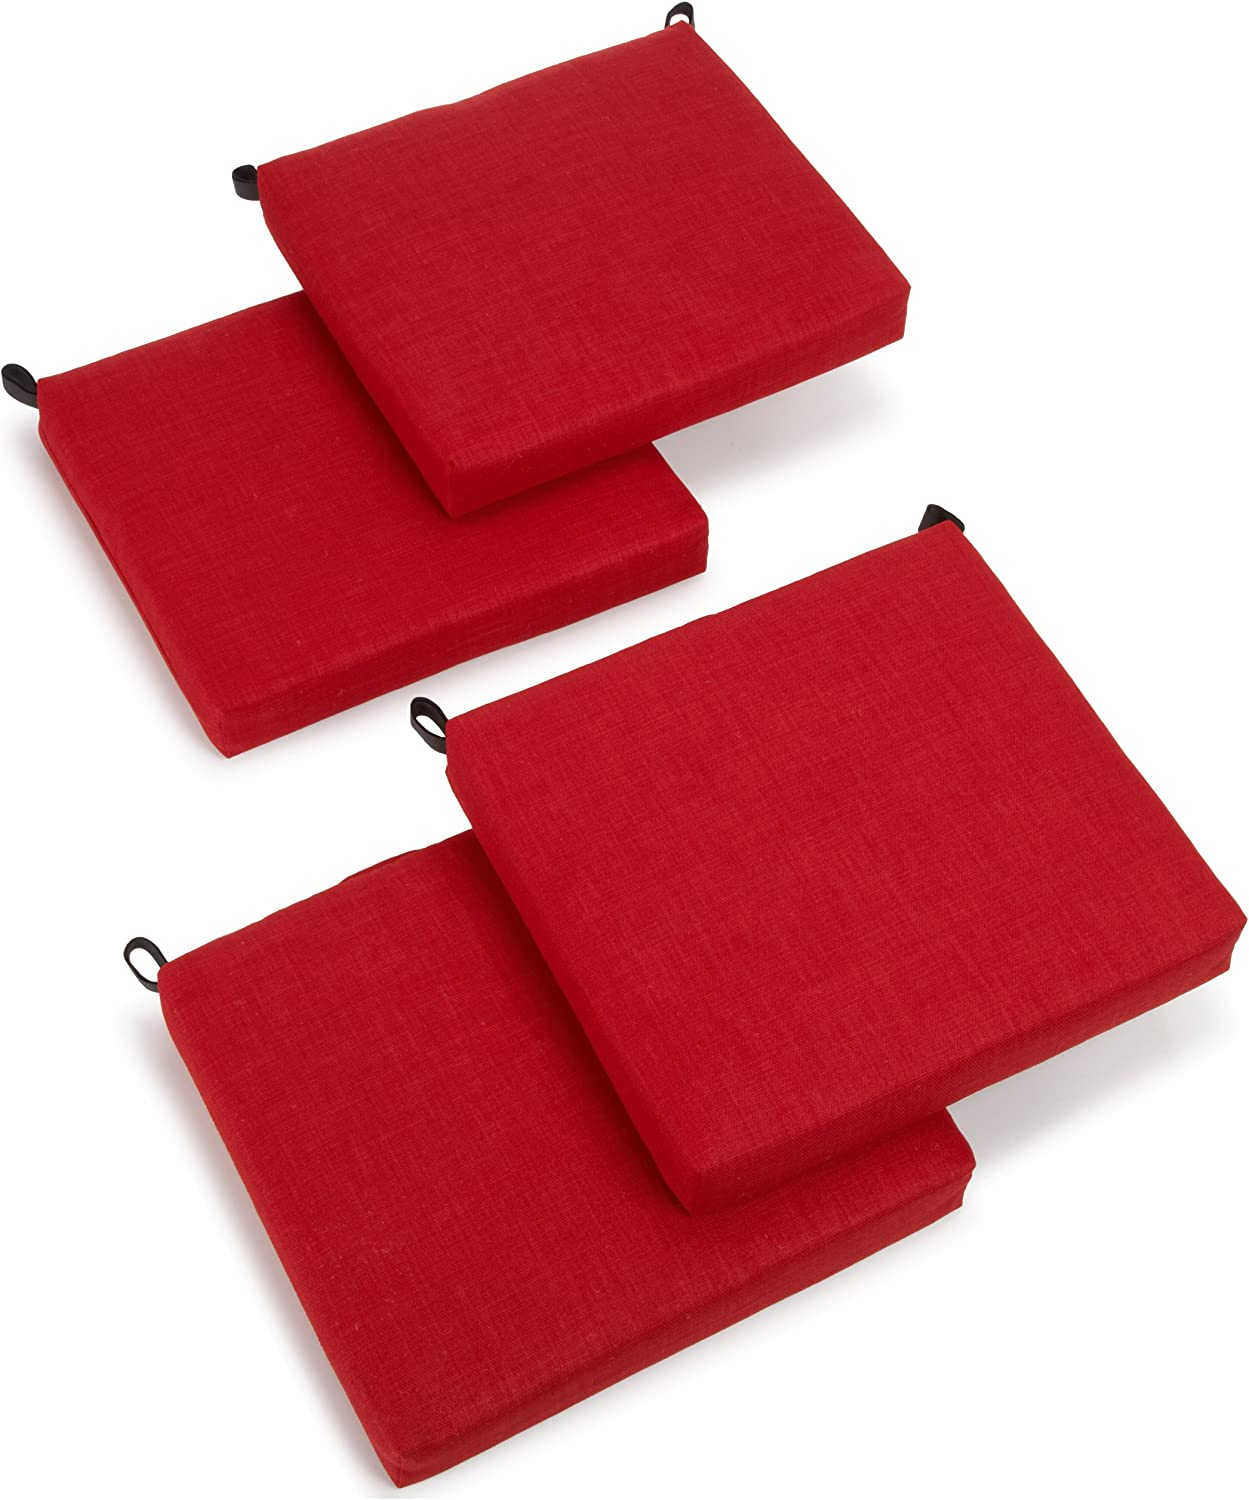 Blazing Needles Outdoor Spun Poly 19-Inch by 20-Inch by 3-1 2-Inch All Weather UV Resistant Zippered Cushions, Paprika, Set of 4